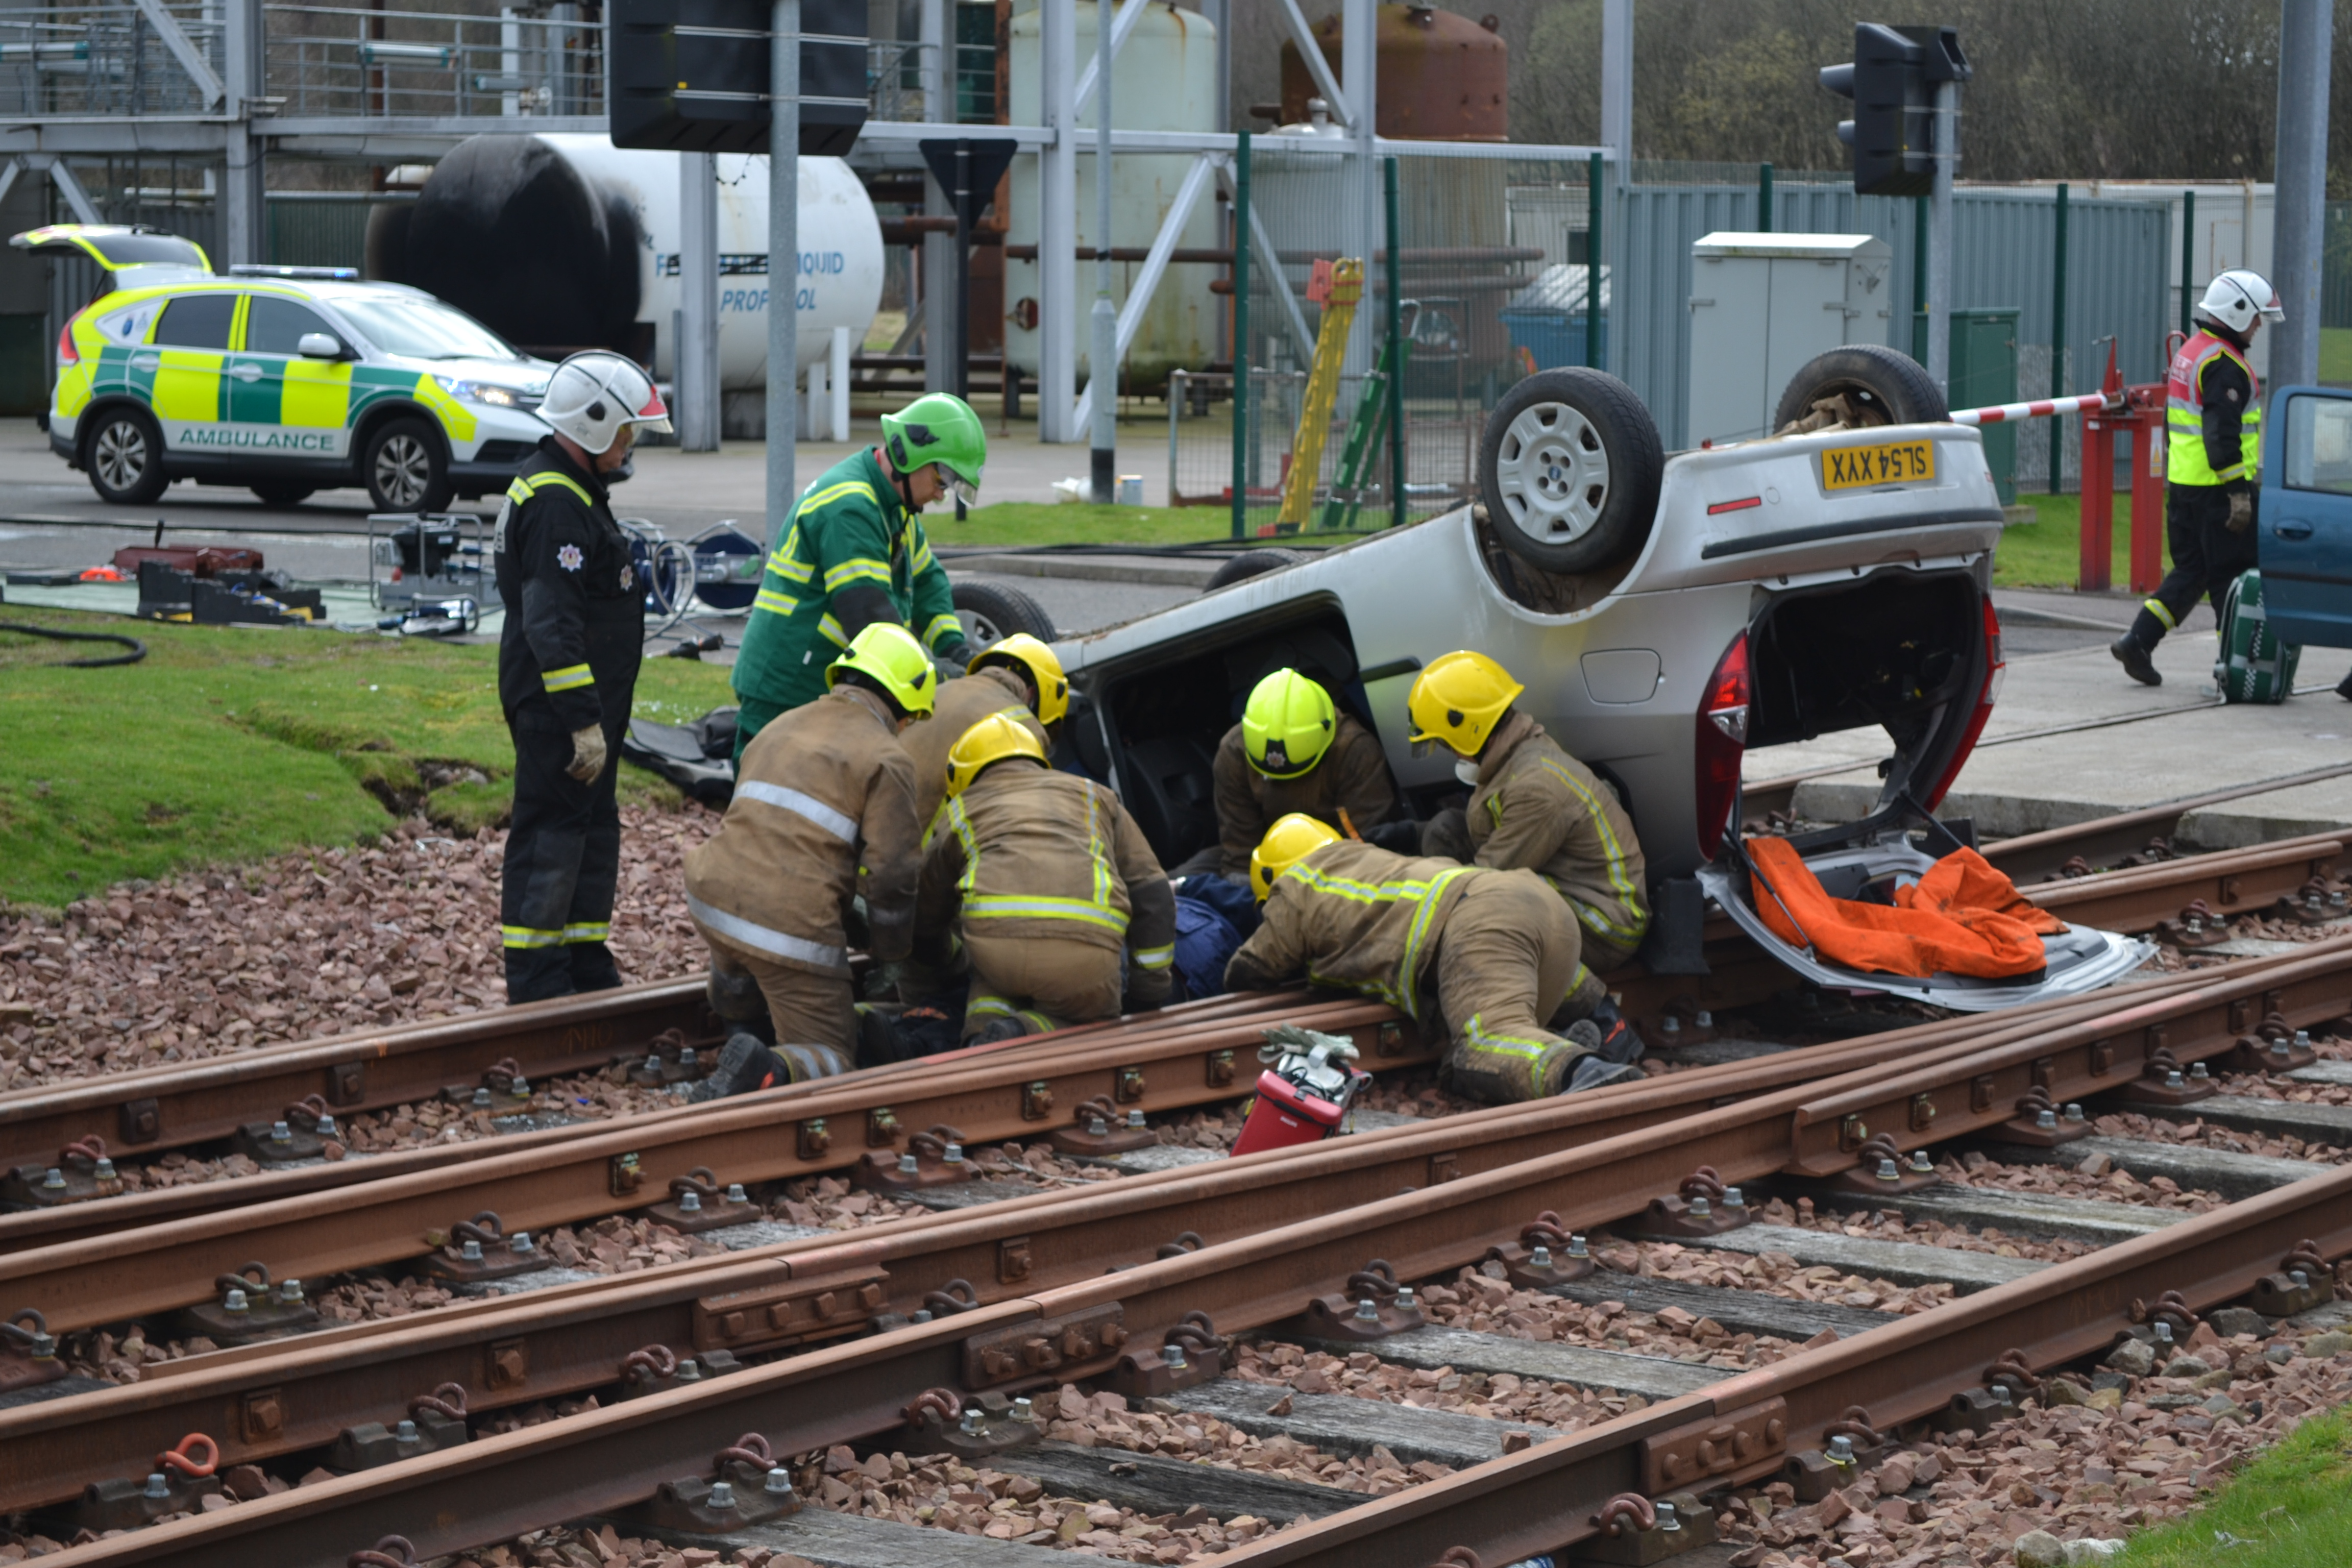 Trainee firefighters in disaster scenario exercise